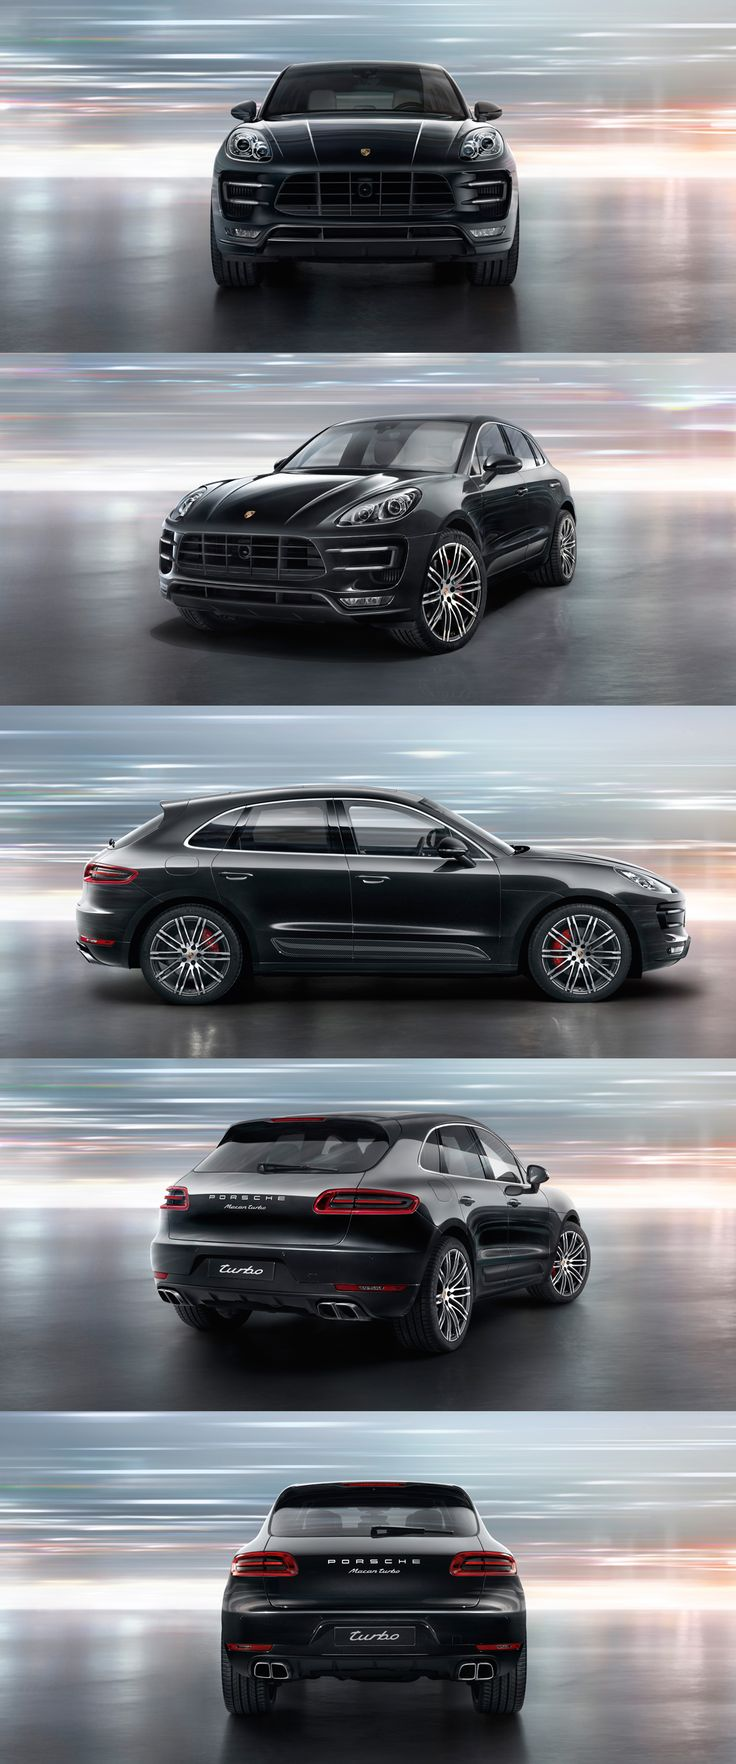 #PorscheMacan: Every design detail radiates one thing: intensely sporty style. Typically Porsche. Learn more: link.porsche.com/... Combined fuel consumption in accordance with EU 5: 9.2-6.1 (46.3-30.7); CO2 emissions: 216-159 g/km. ...repinned für Gewinner!  - jetzt gratis Erfolgsratgeber sichern www.ratsucher.de